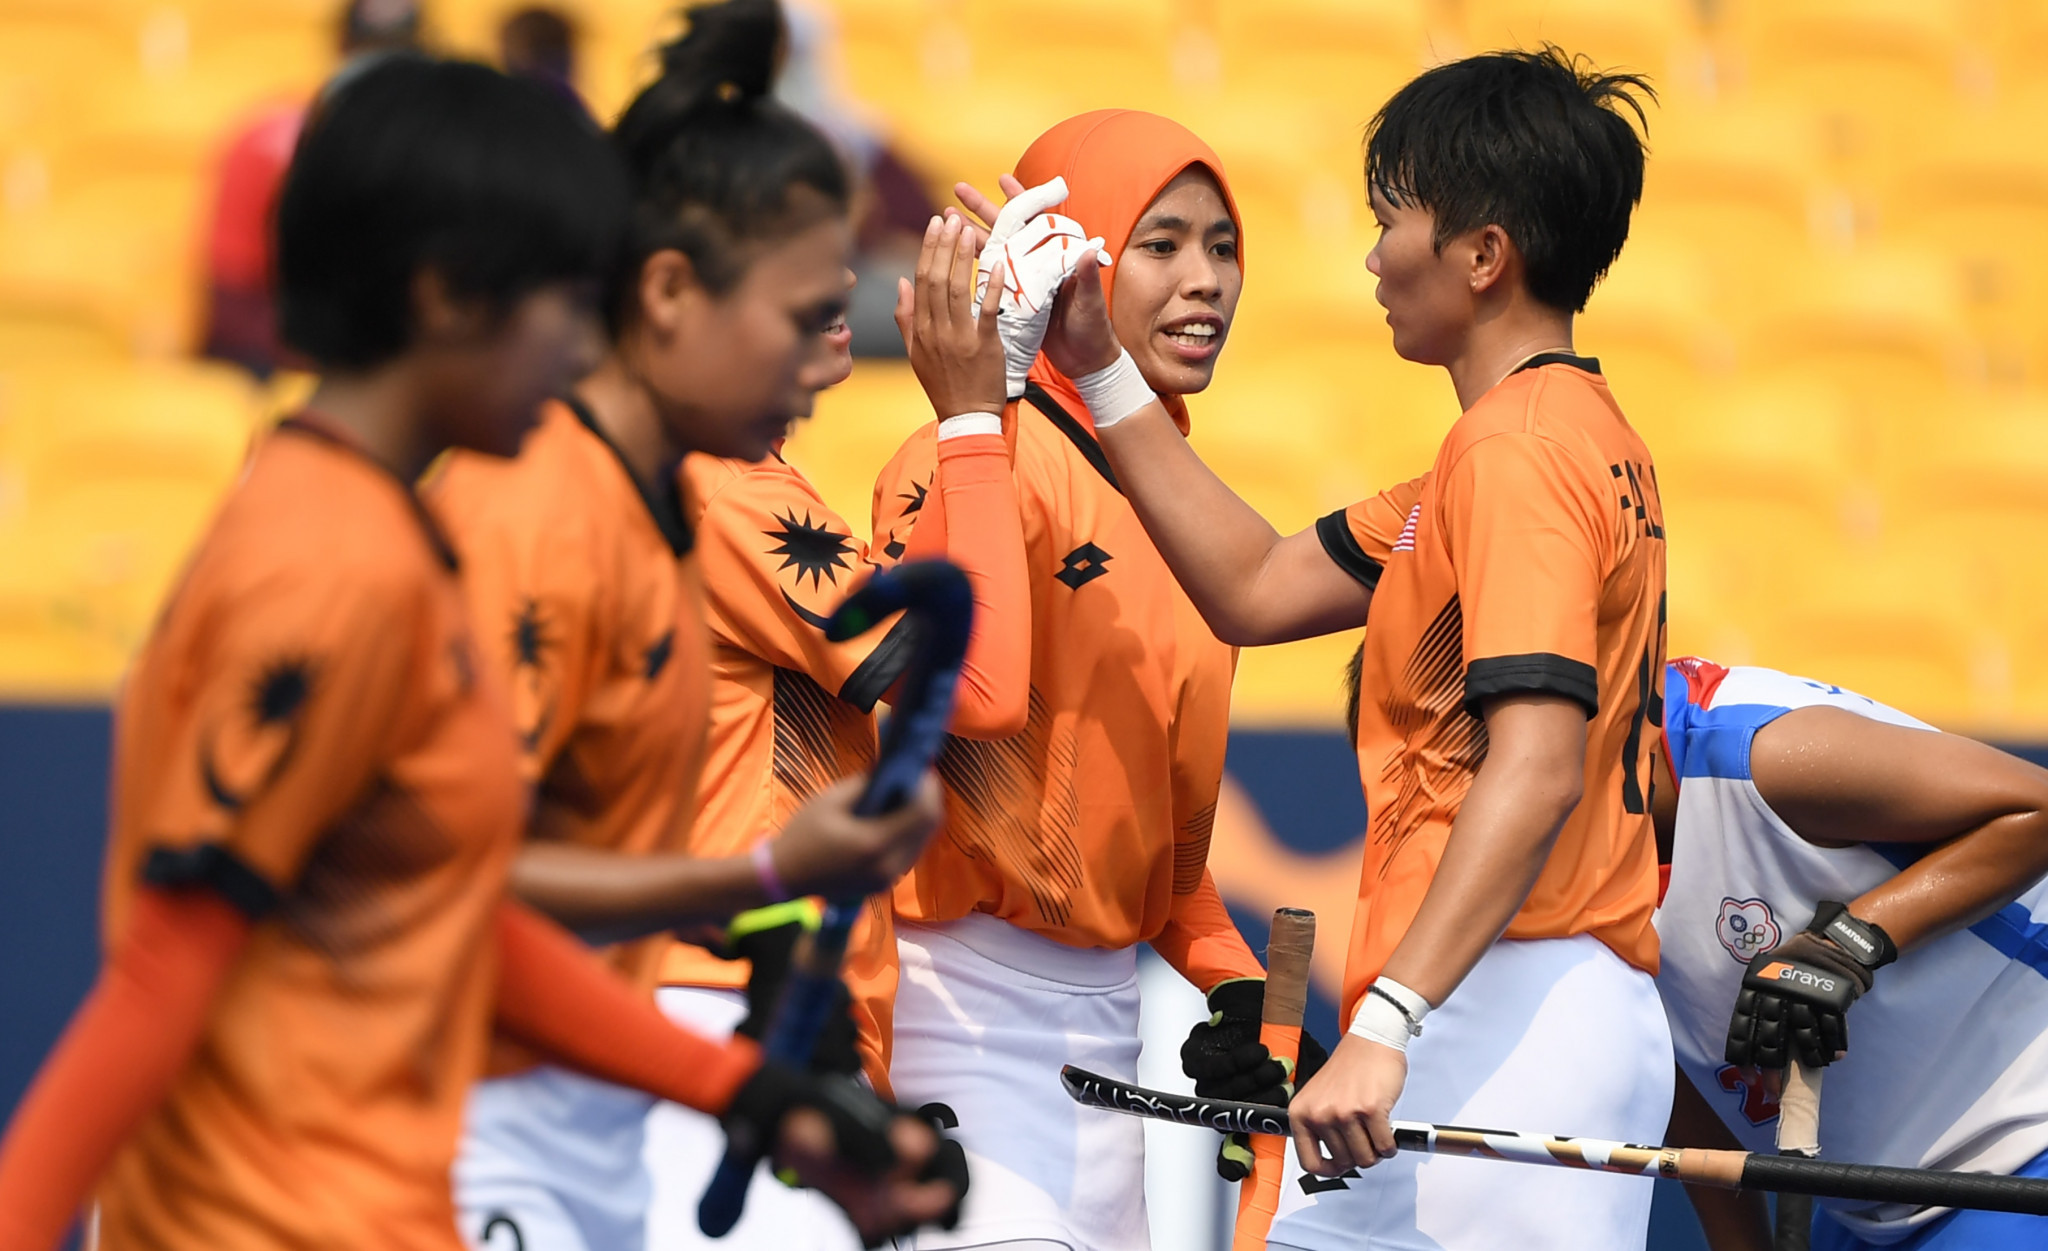 Malaysian Hockey Confederation targets 2026 Asian Games with new women's development team